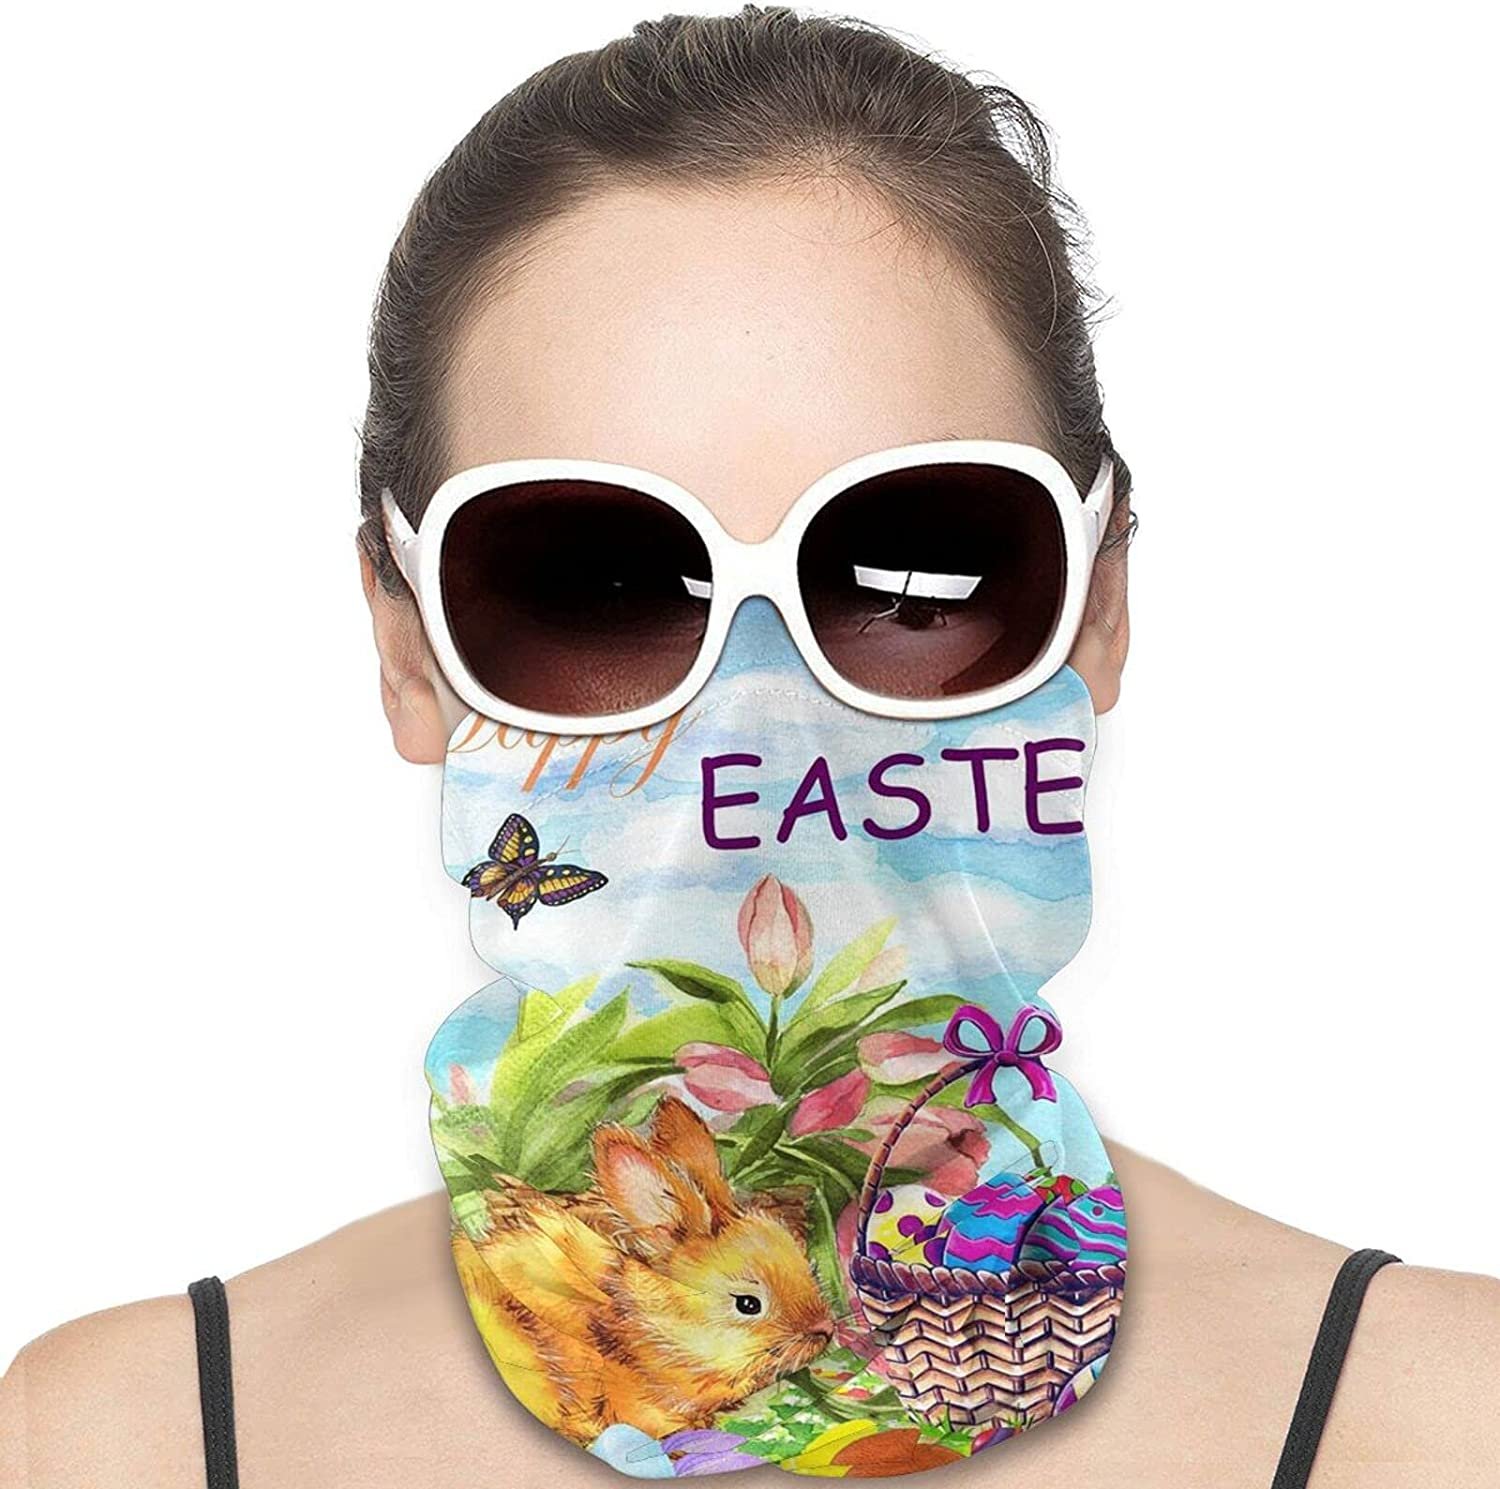 Happy Easter Bunny Eggs Basket Lilies Flowers Round Neck Gaiter Bandnas Face Cover Uv Protection Prevent bask in Ice Scarf Headbands Perfect for Motorcycle Cycling Running Festival Raves Outdoors